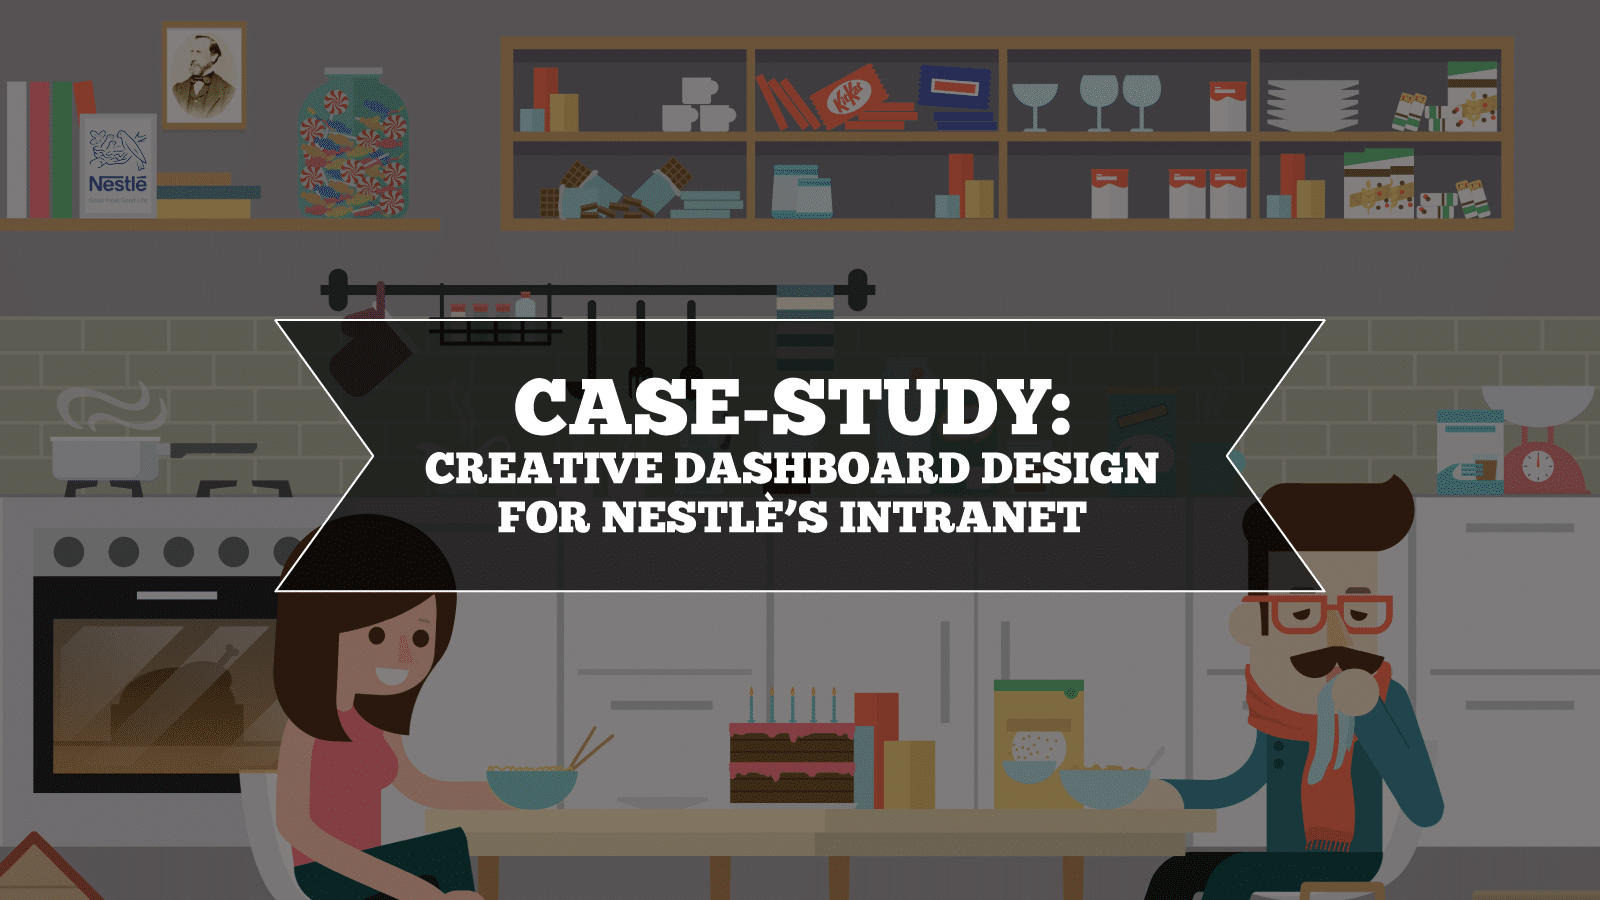 Case-study: Intranet Dashboard Design for Nestlé